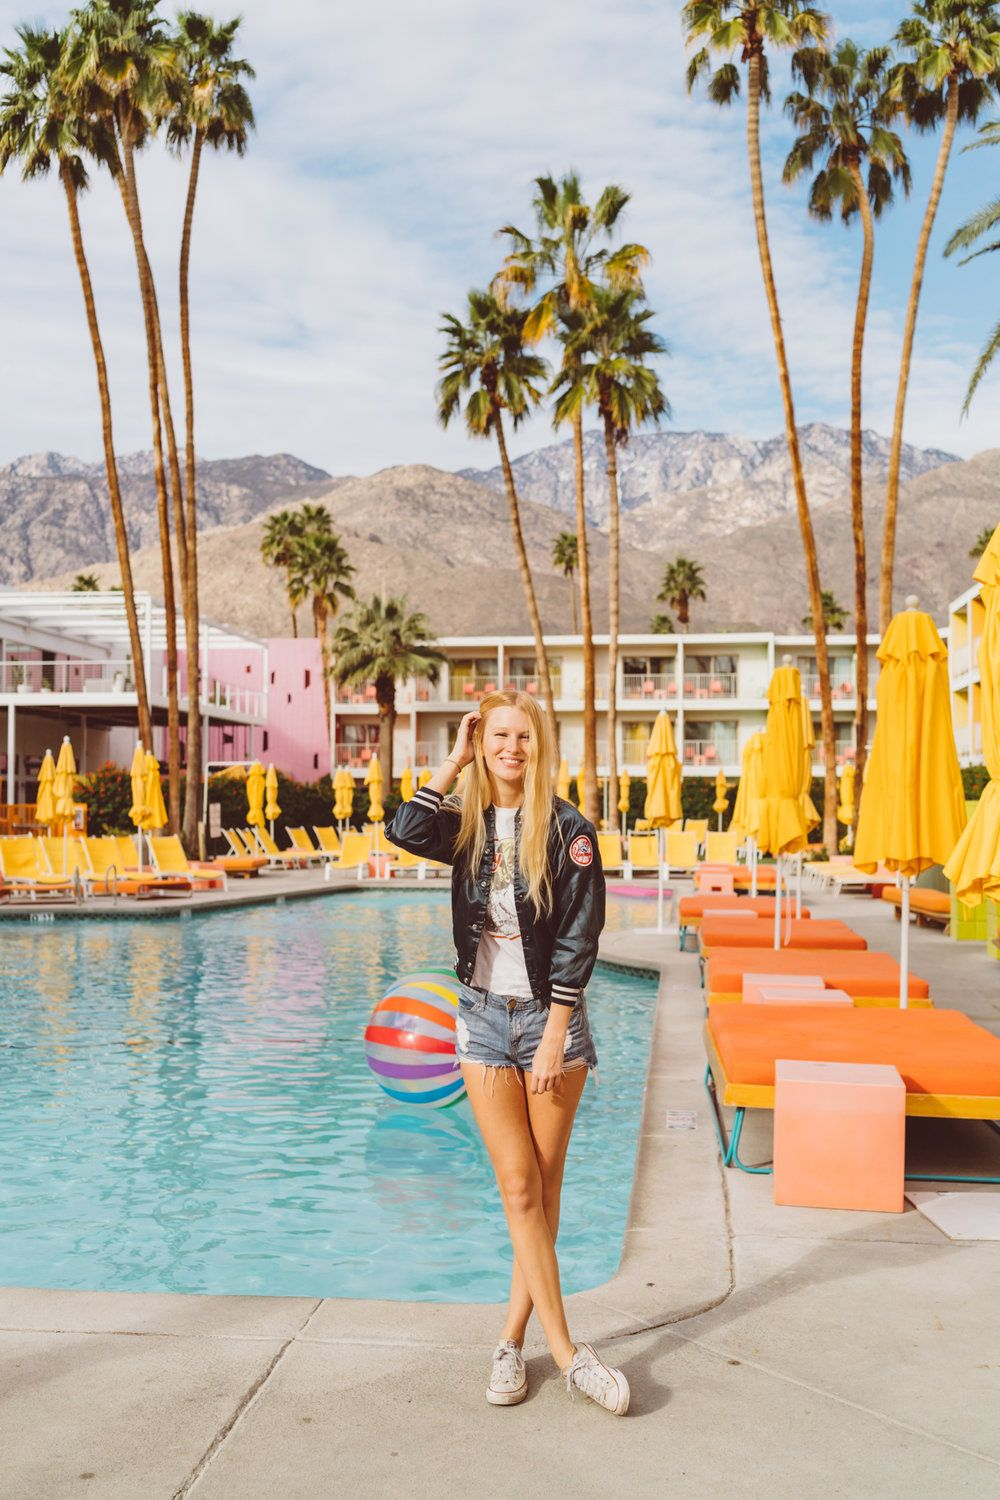 Things to do in Palm Springs   #palmsprings #california #desert #travel #explore #vacation #midcentury #hotel #saguarohotel